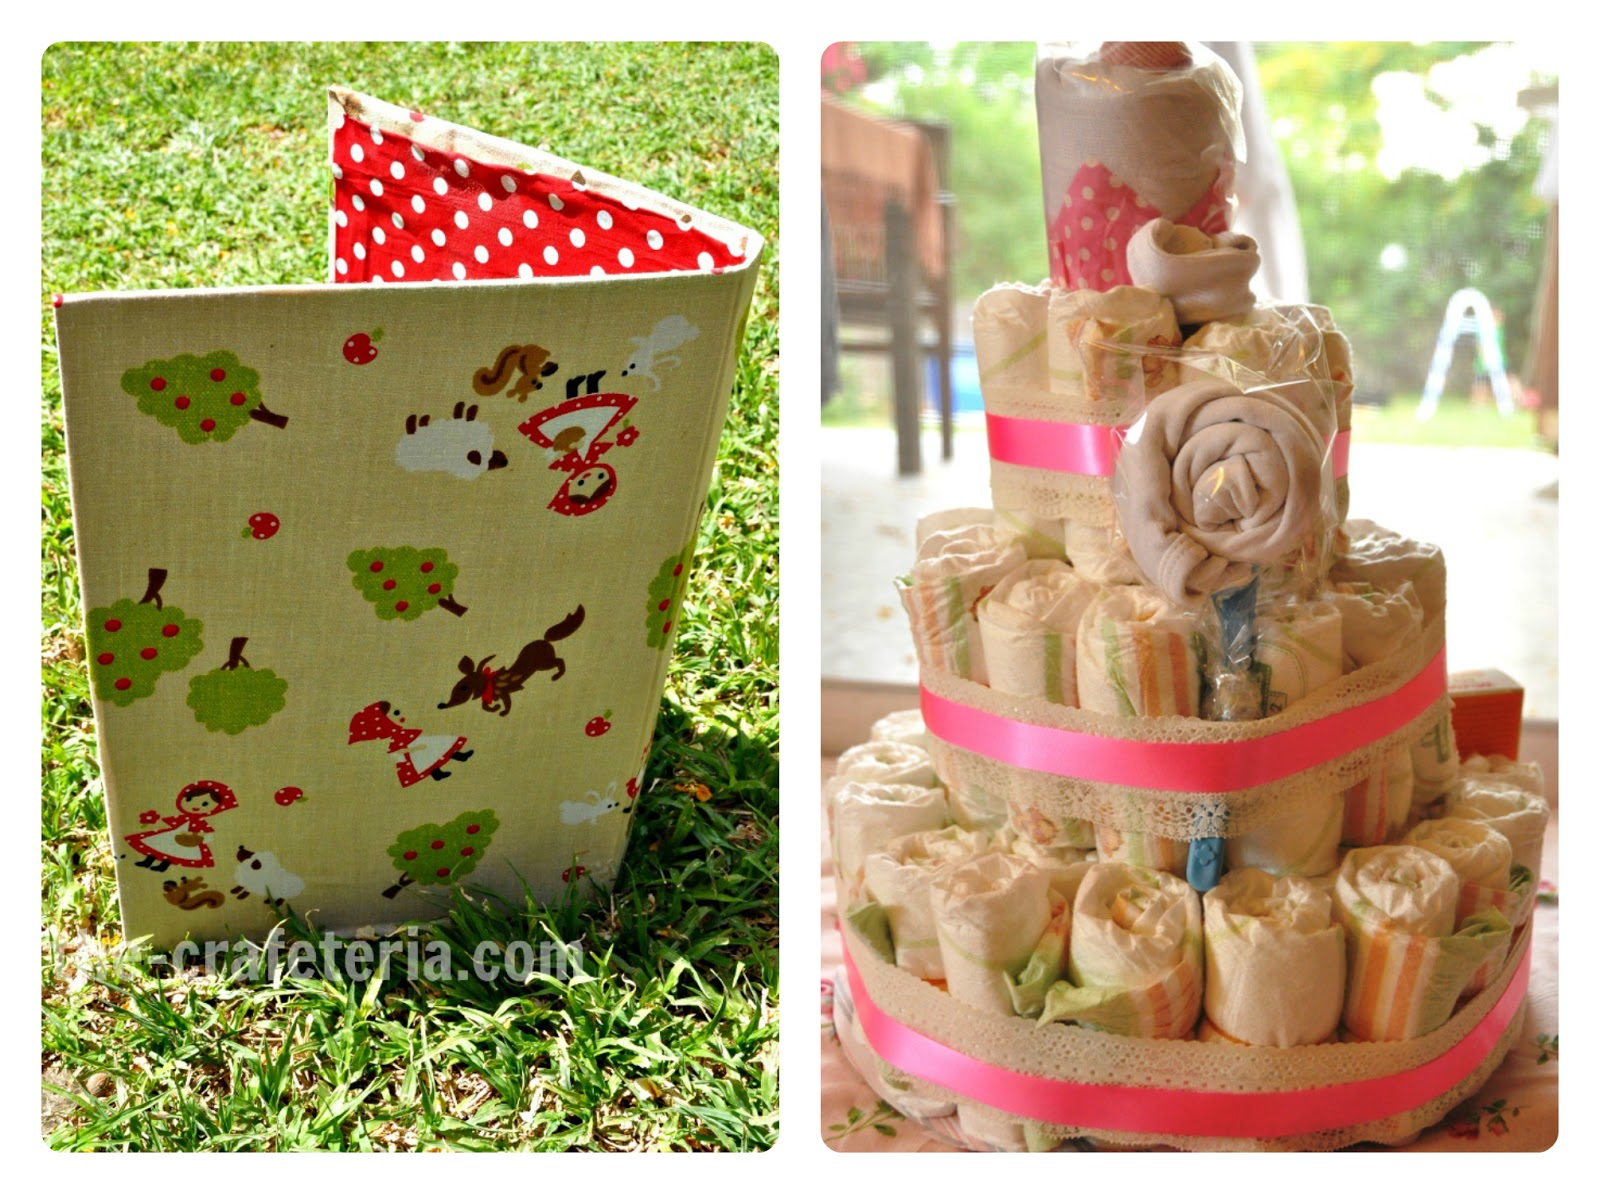 Fabric Covered Binder and Diaper Cake